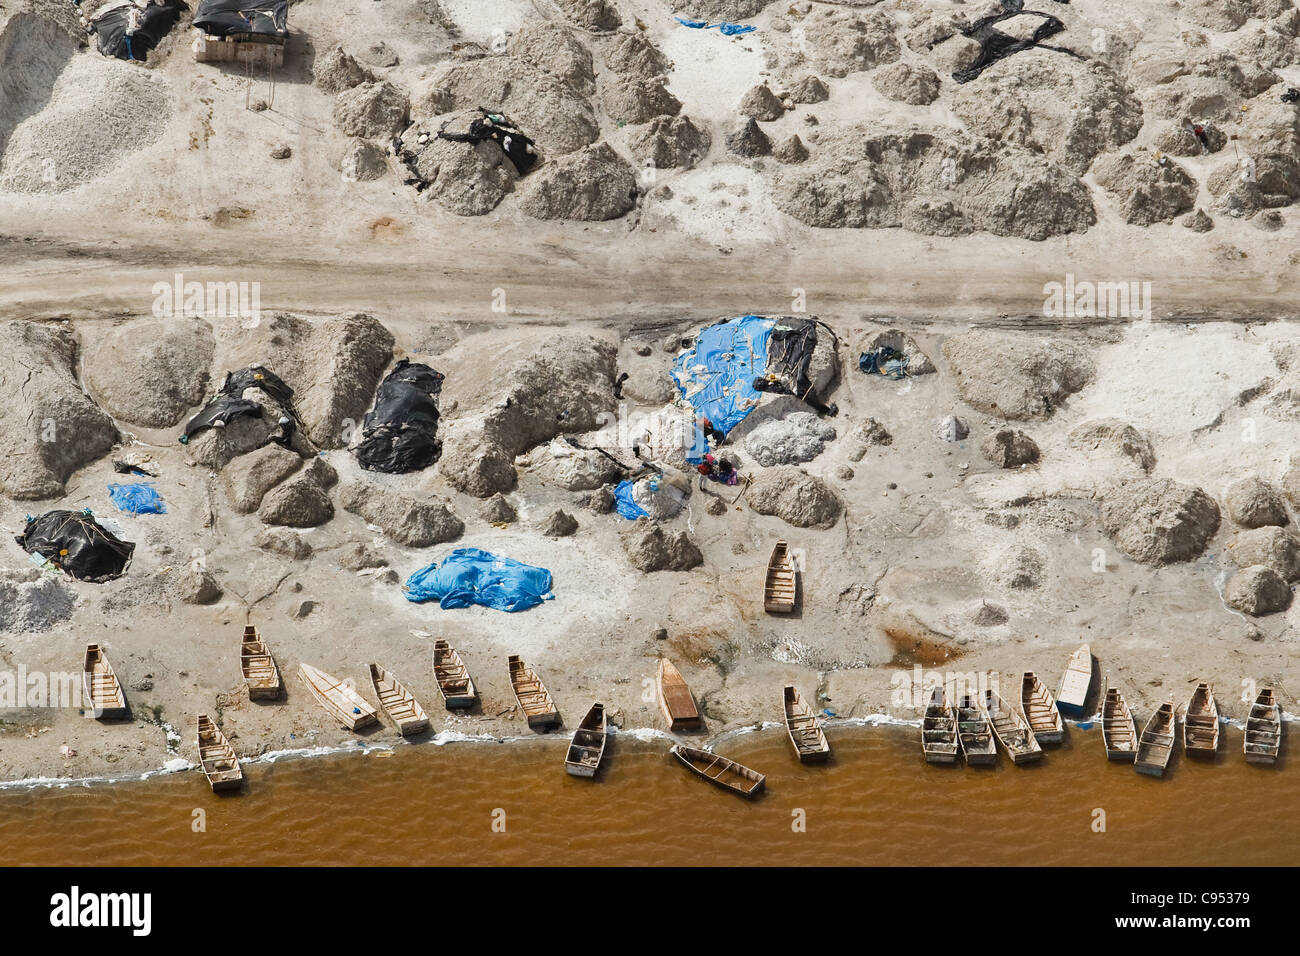 Pirogues and salt production on the shore of Lac Rose (Pink Lake) near Dakar, Senegal. - Stock Image